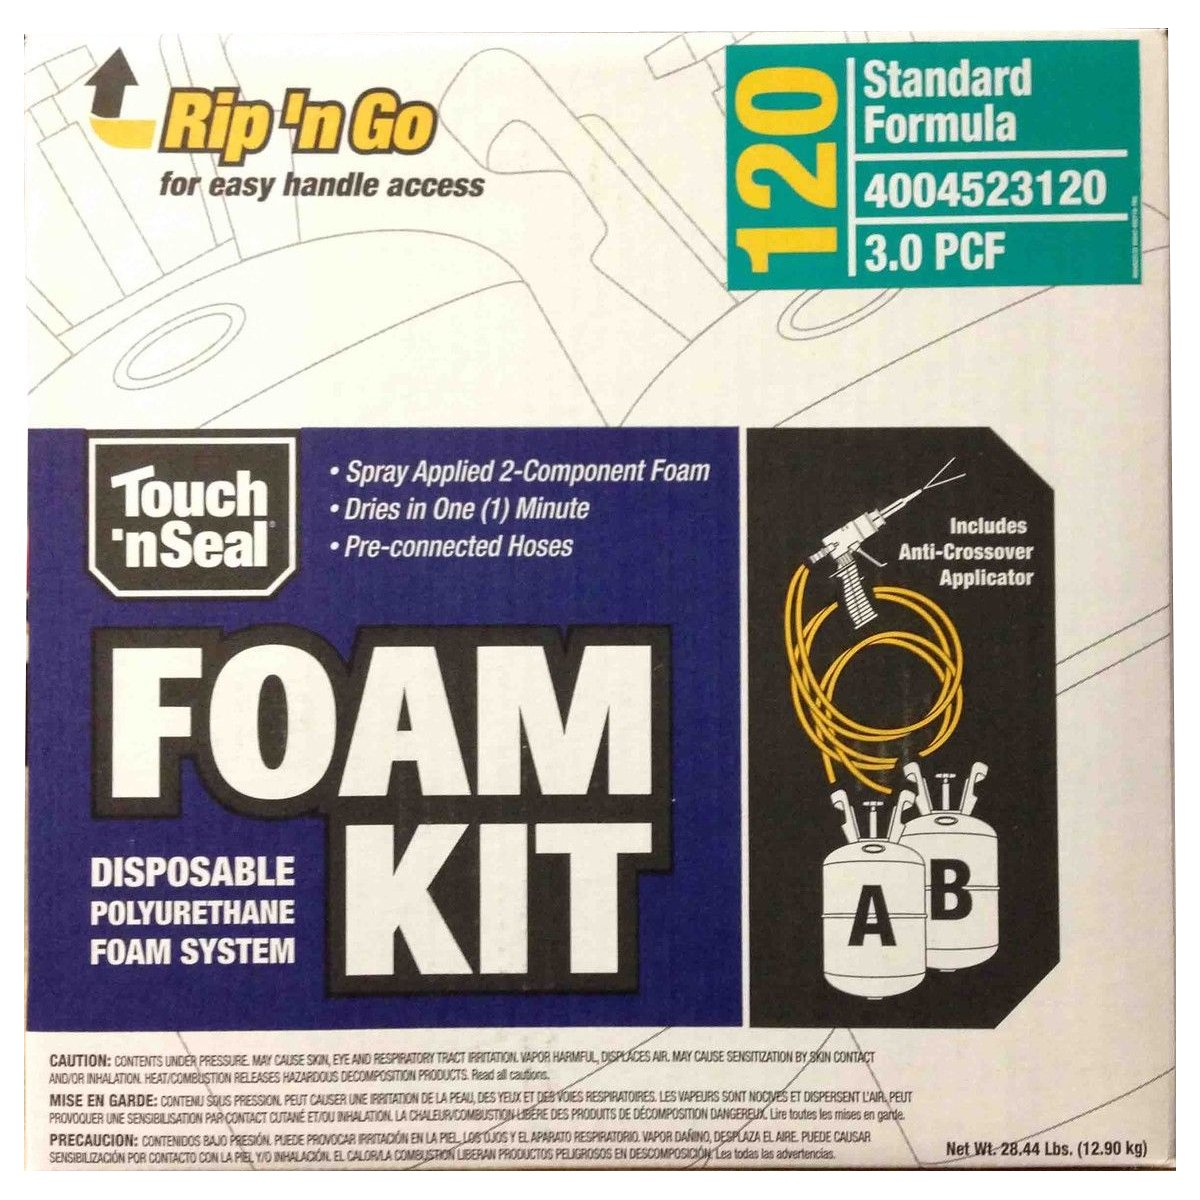 Touch n' Seal High Density Spray Foam Roof Insulation Kit 3.0 PCF Closed Cell Foam - 120 BF by Convenience Products